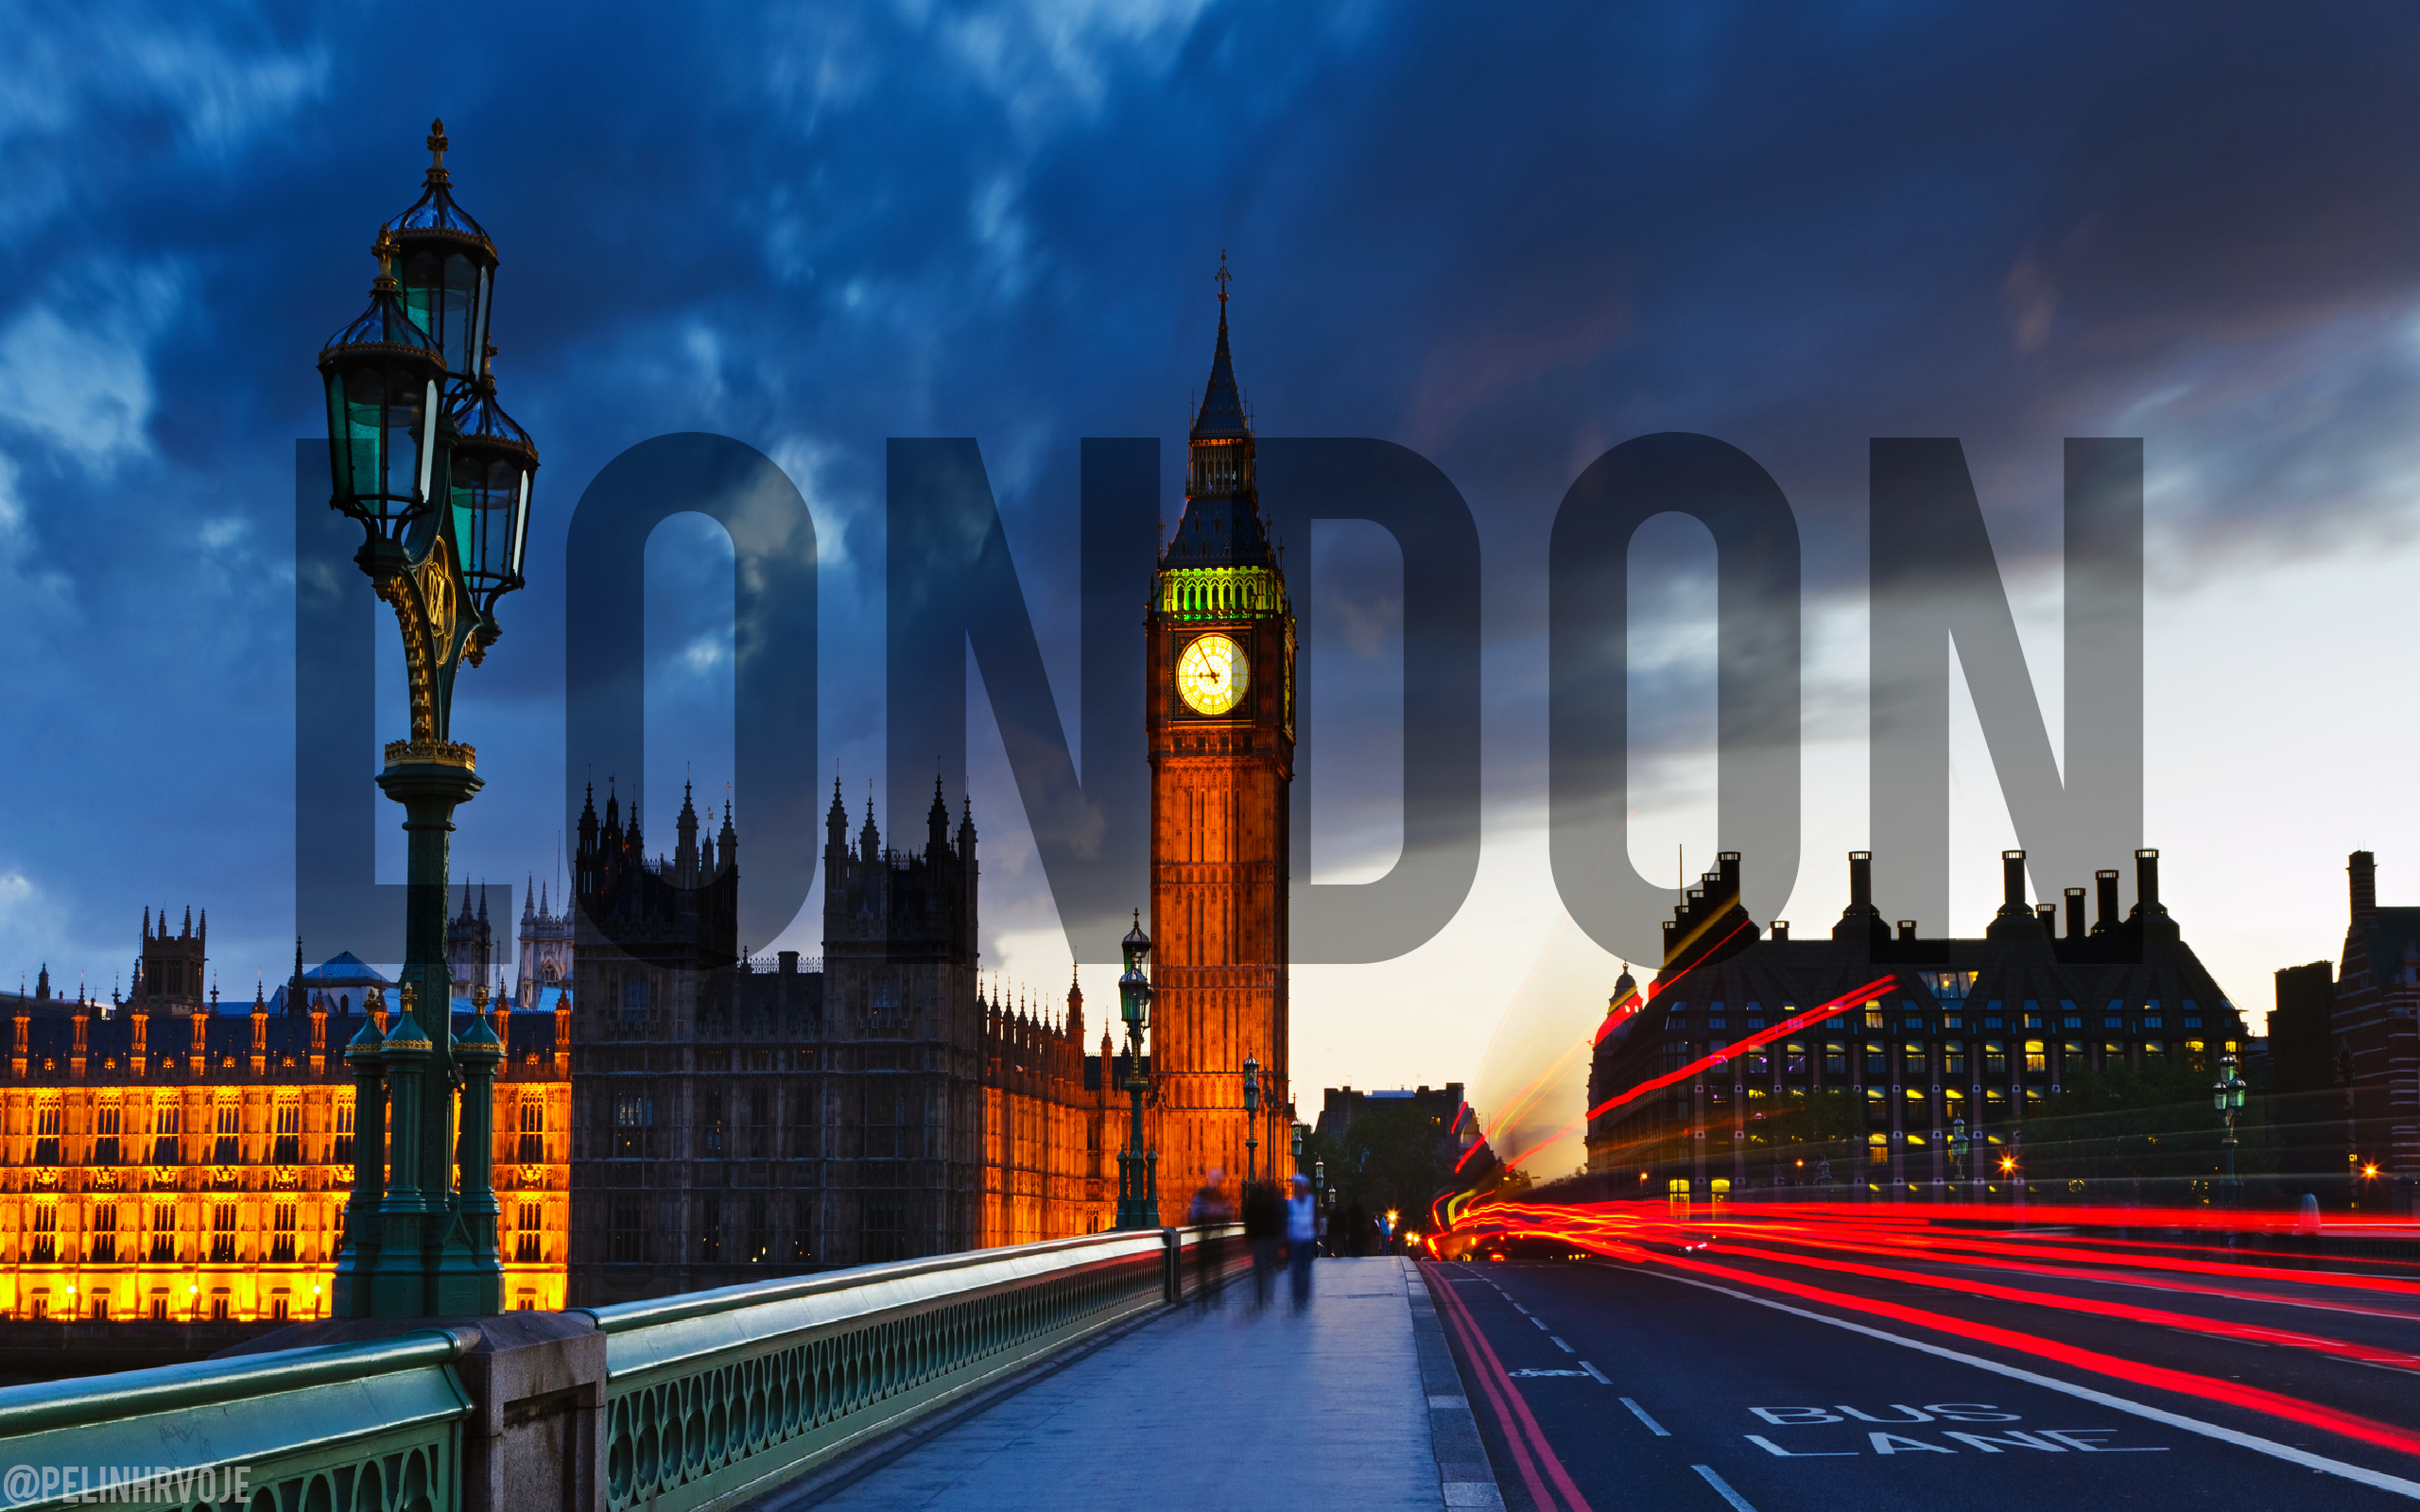 london wallpaper by pelinhrvoje on deviantart